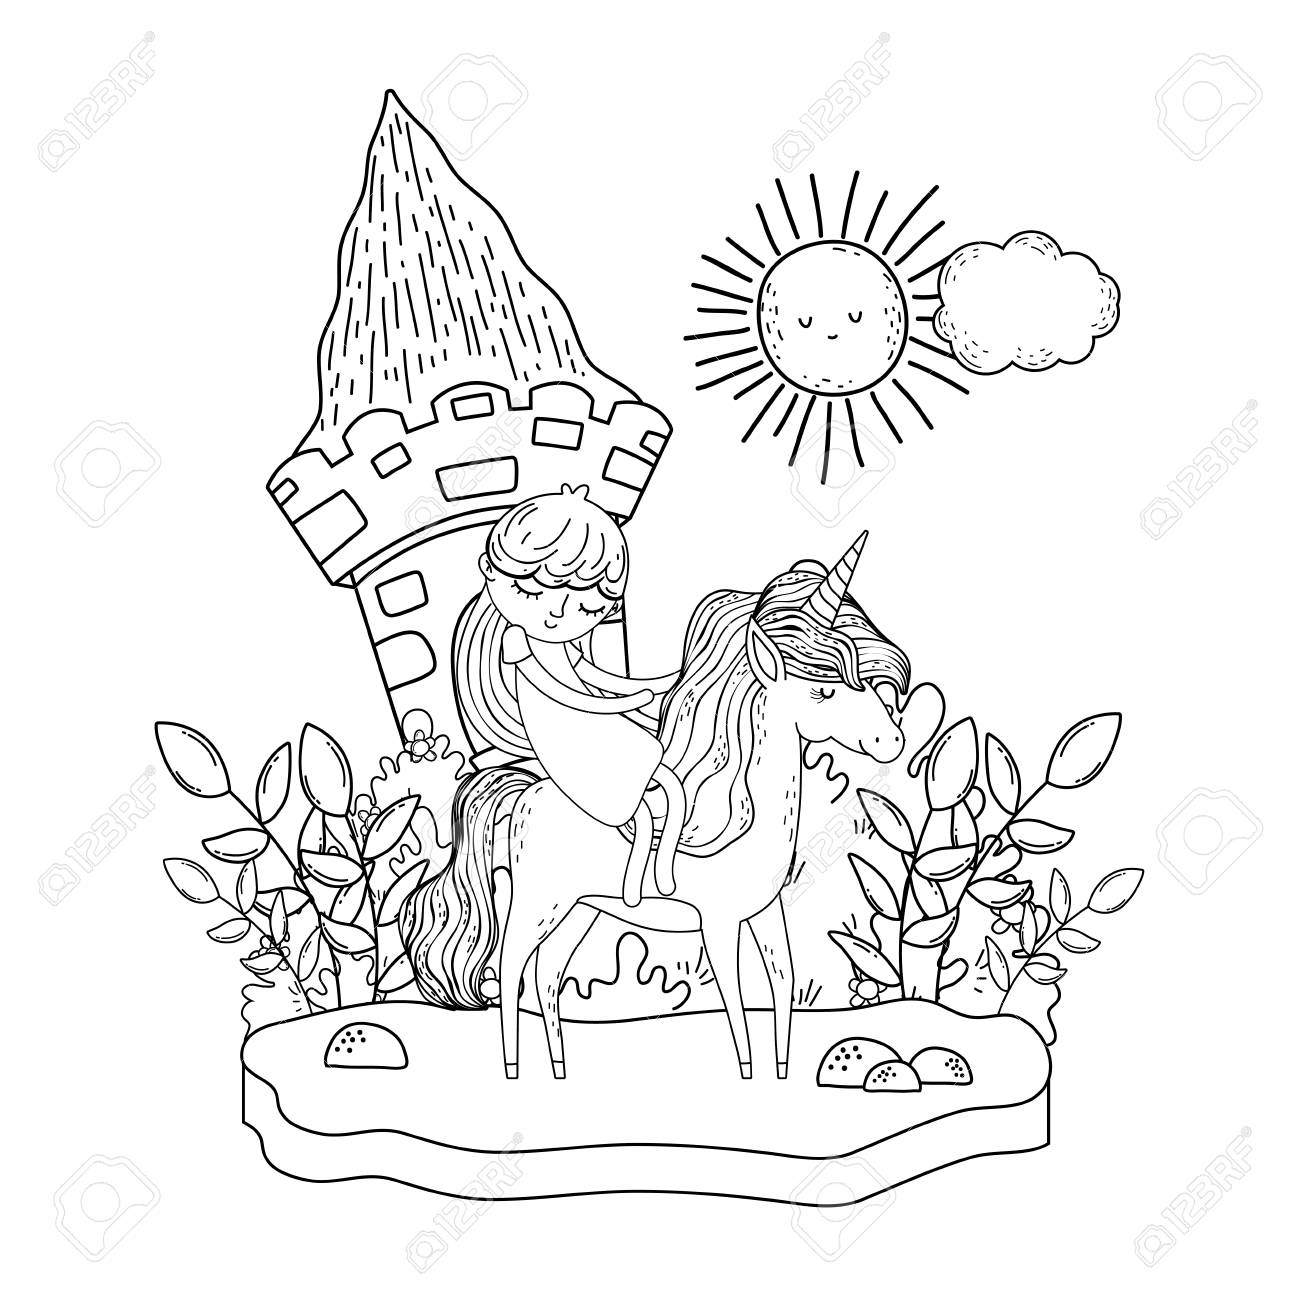 unicorn and princess with castle in the landscape - 116096614